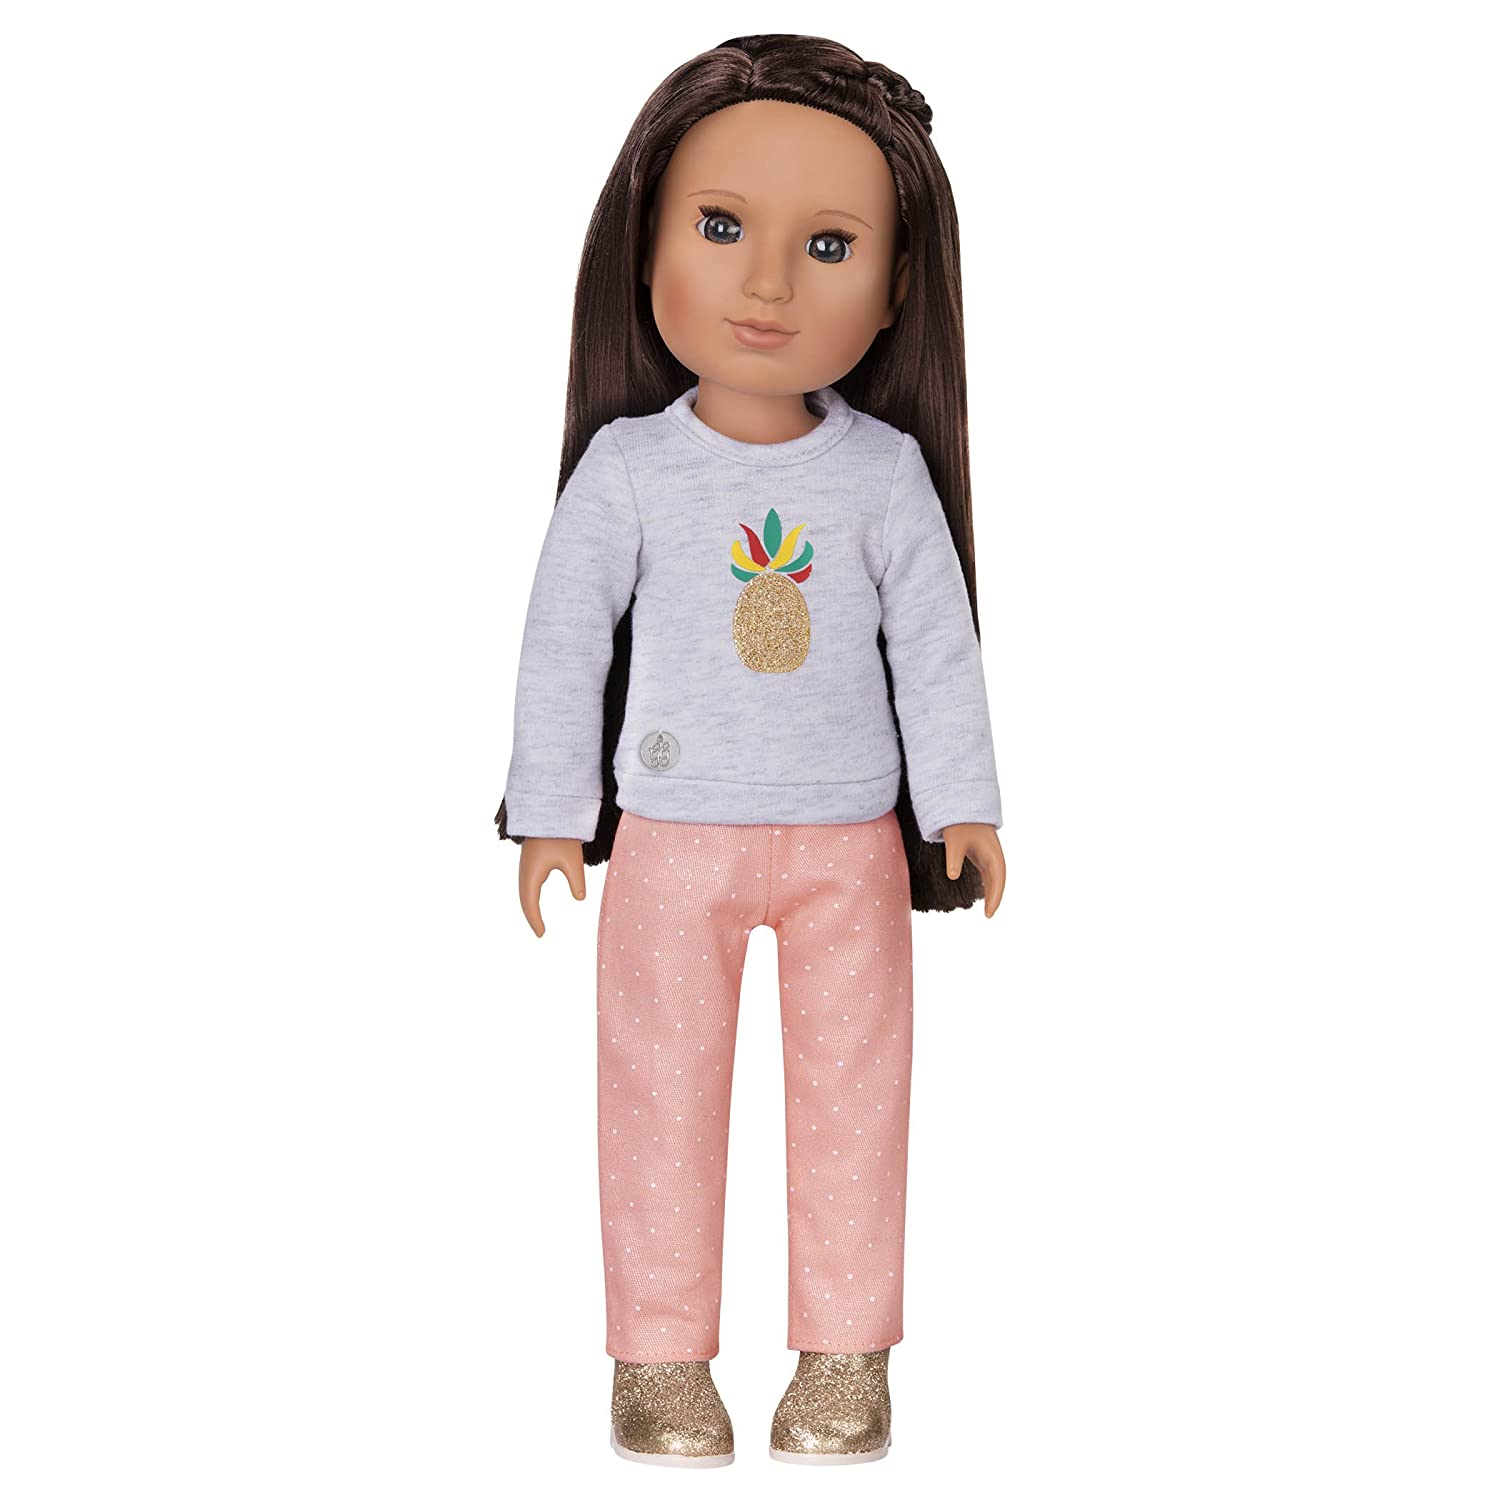 Glitter Girls by Battat – Sparkling with Style Glittery Top and Skirt Regular Outfit - 14 inch Doll Clothes and Accessories for Girls Age 3 and Up – Children's Toys Branford LTD GG50001Z